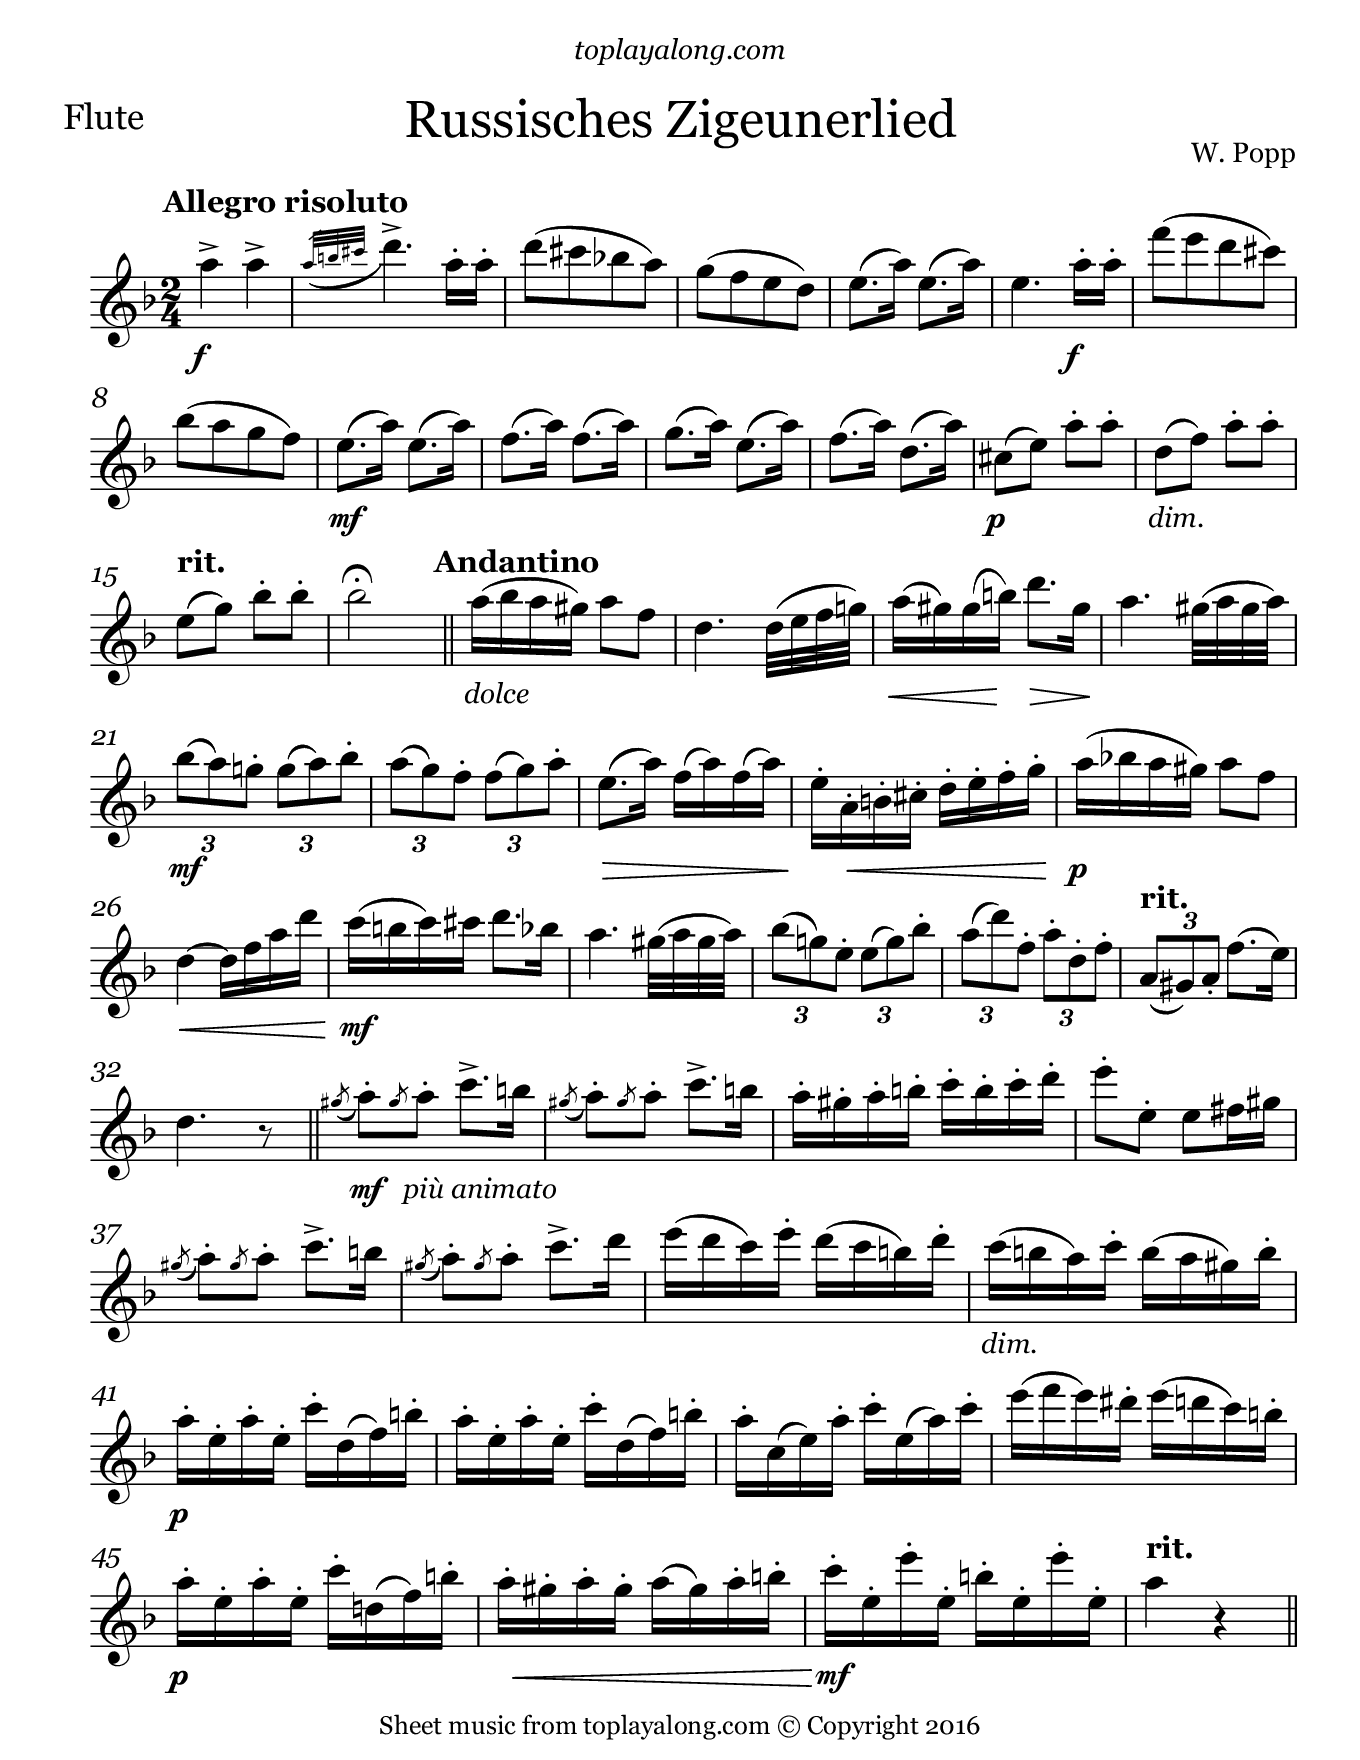 Russisches Zigeunerlied by Popp. Sheet music for Flute, page 1.